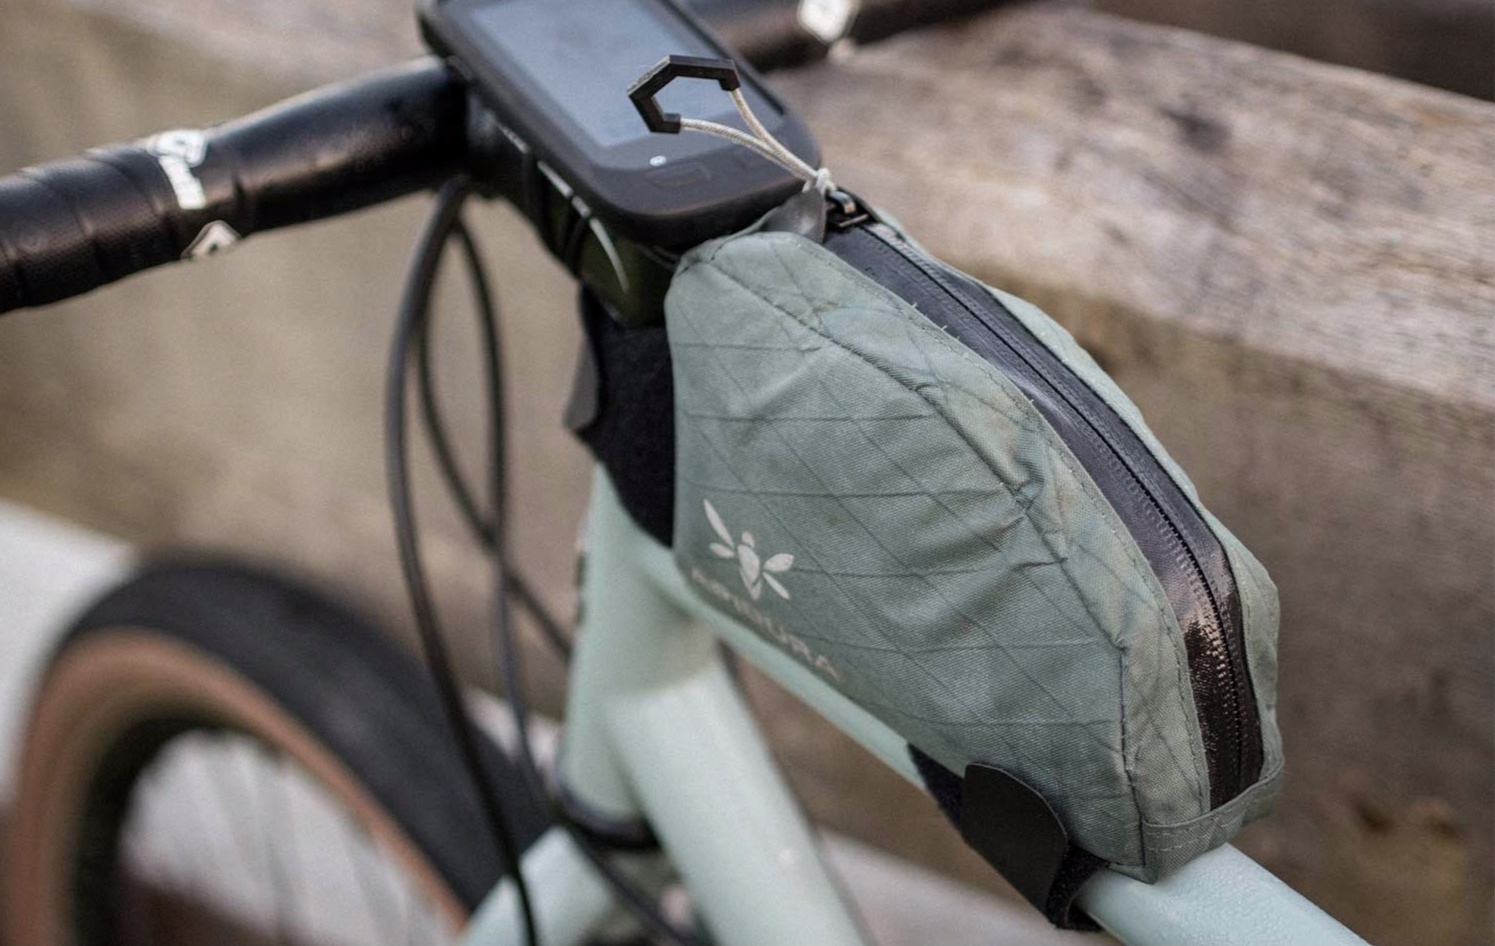 How-to-use-strava-Apidura-guide.jpg